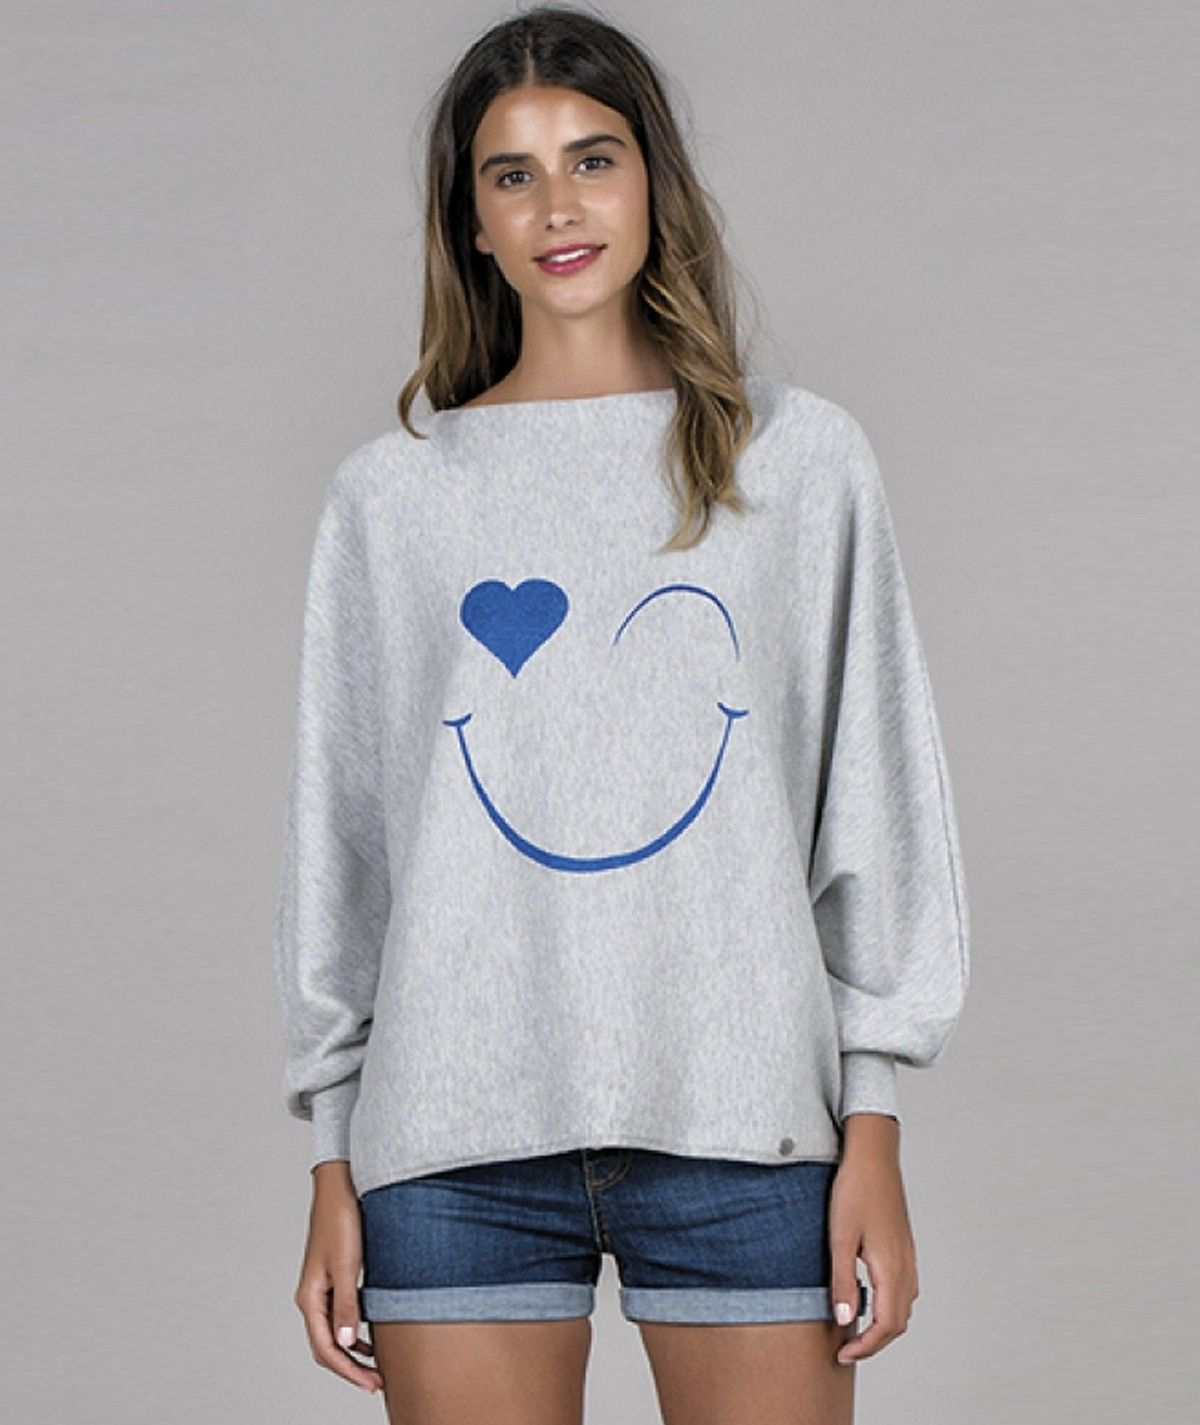 Sweater with smile motif